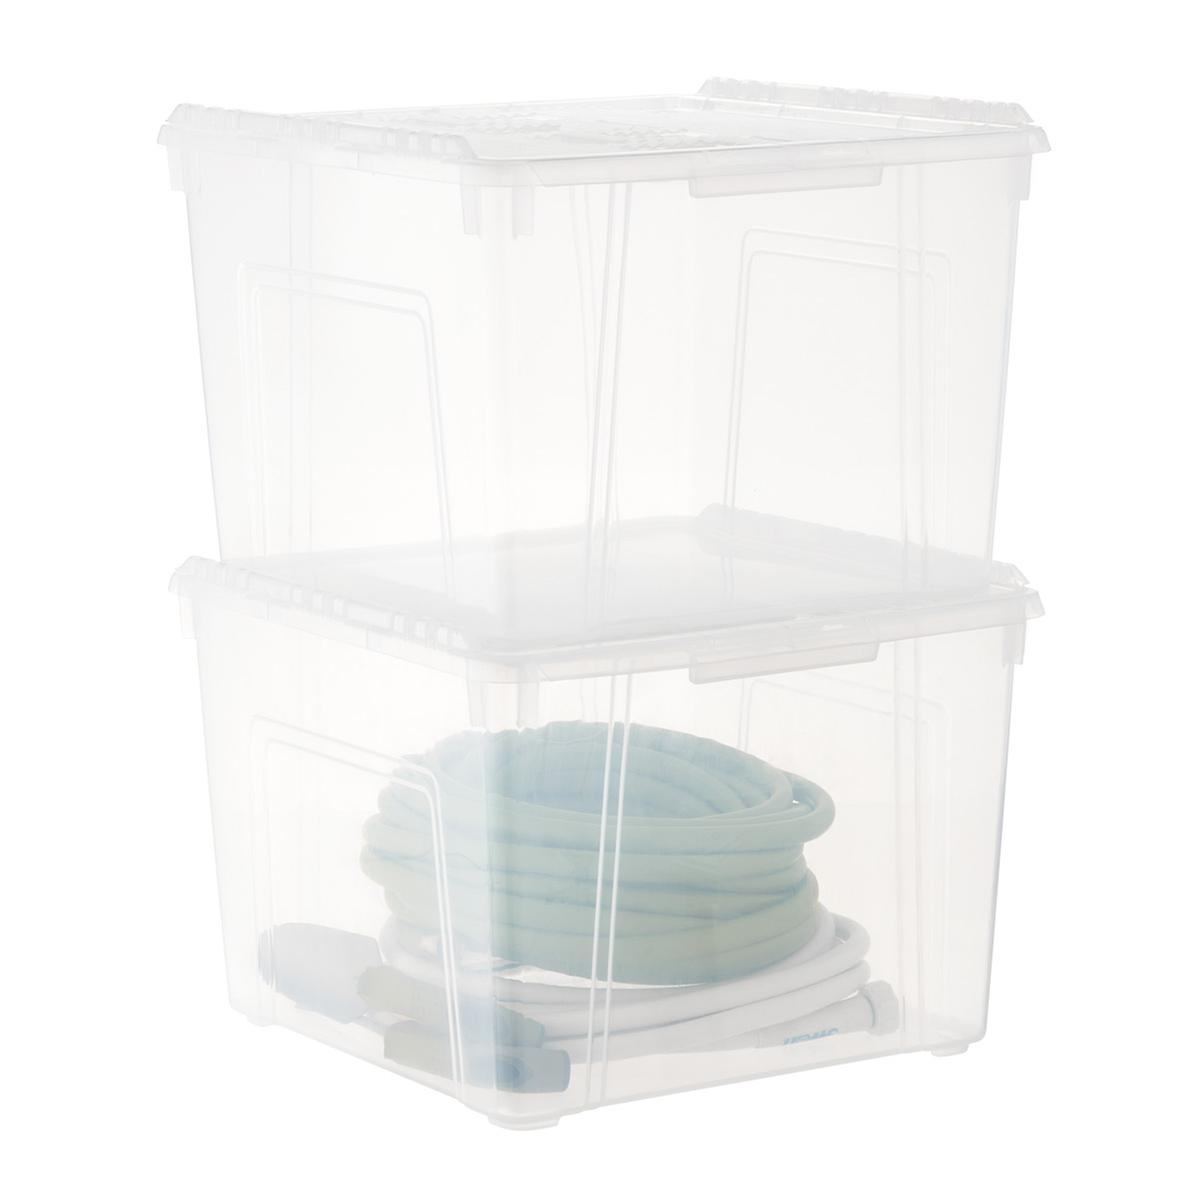 Iris Wing-Lid Storage Box | The Container Store